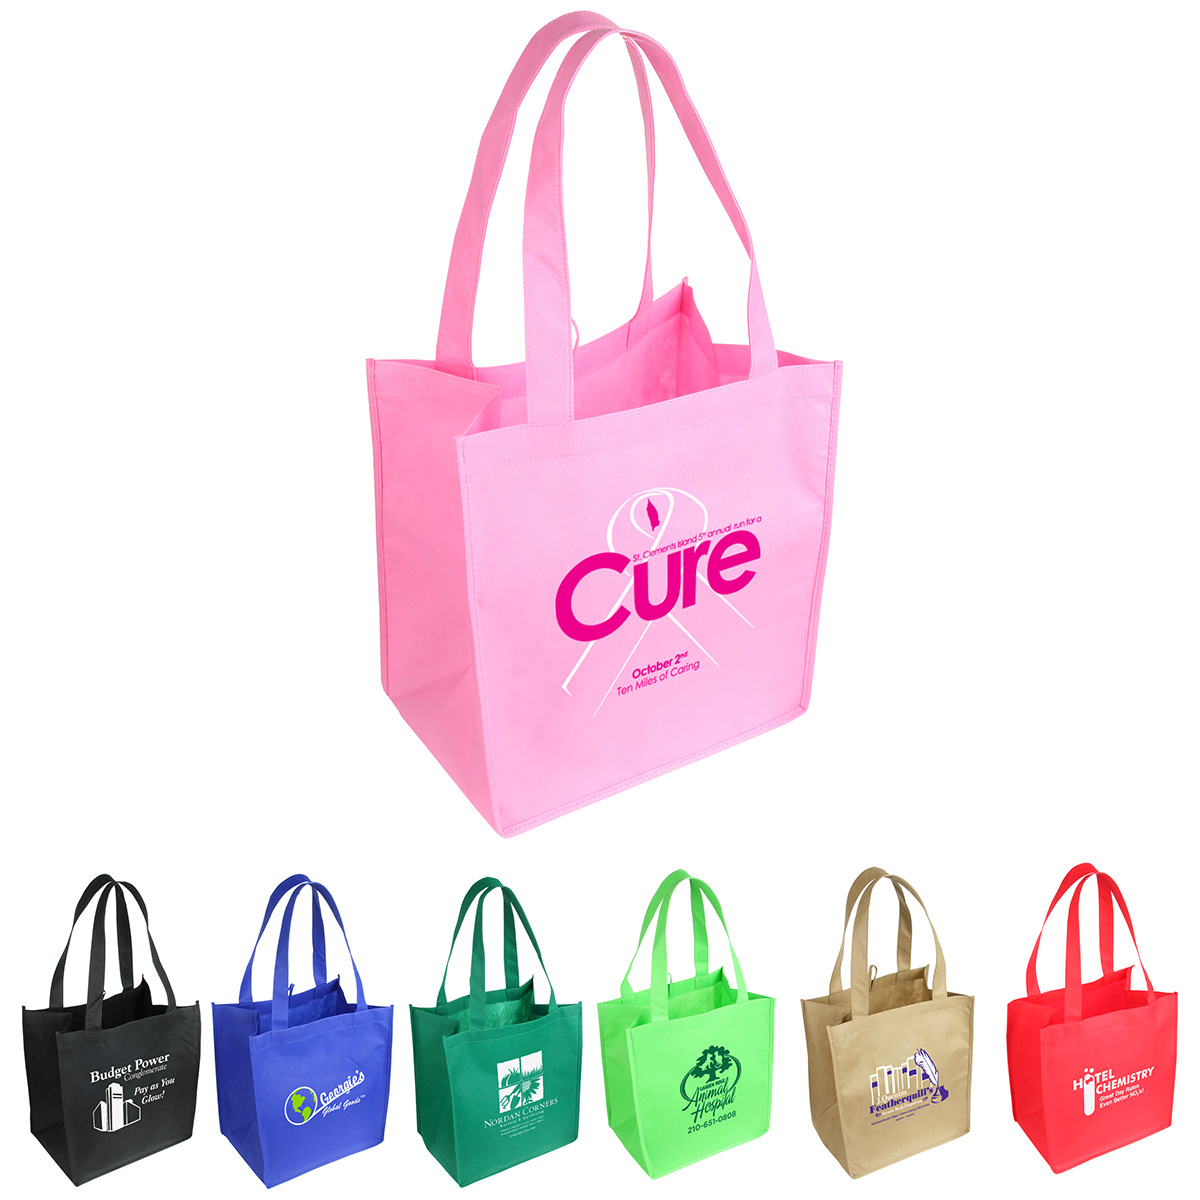 Sunbeam Tote Shopping Bag, WBA-ST09, 1 Colour Imprint